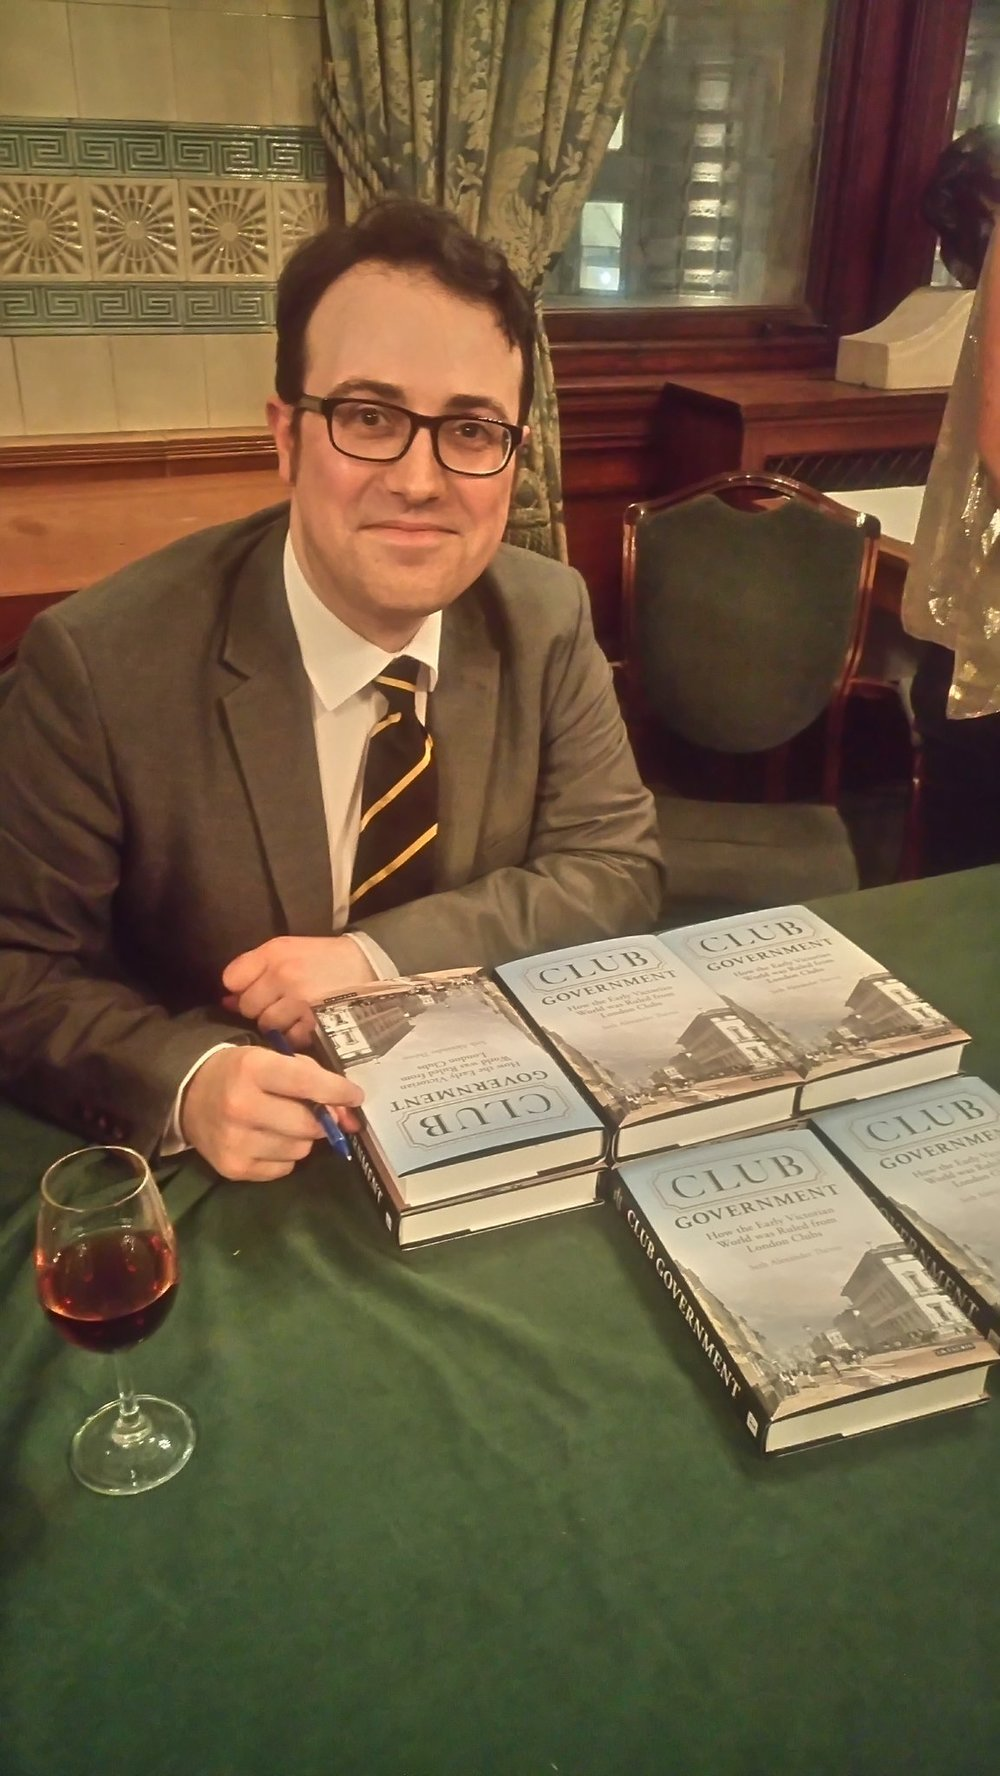 club government book launch.jpg